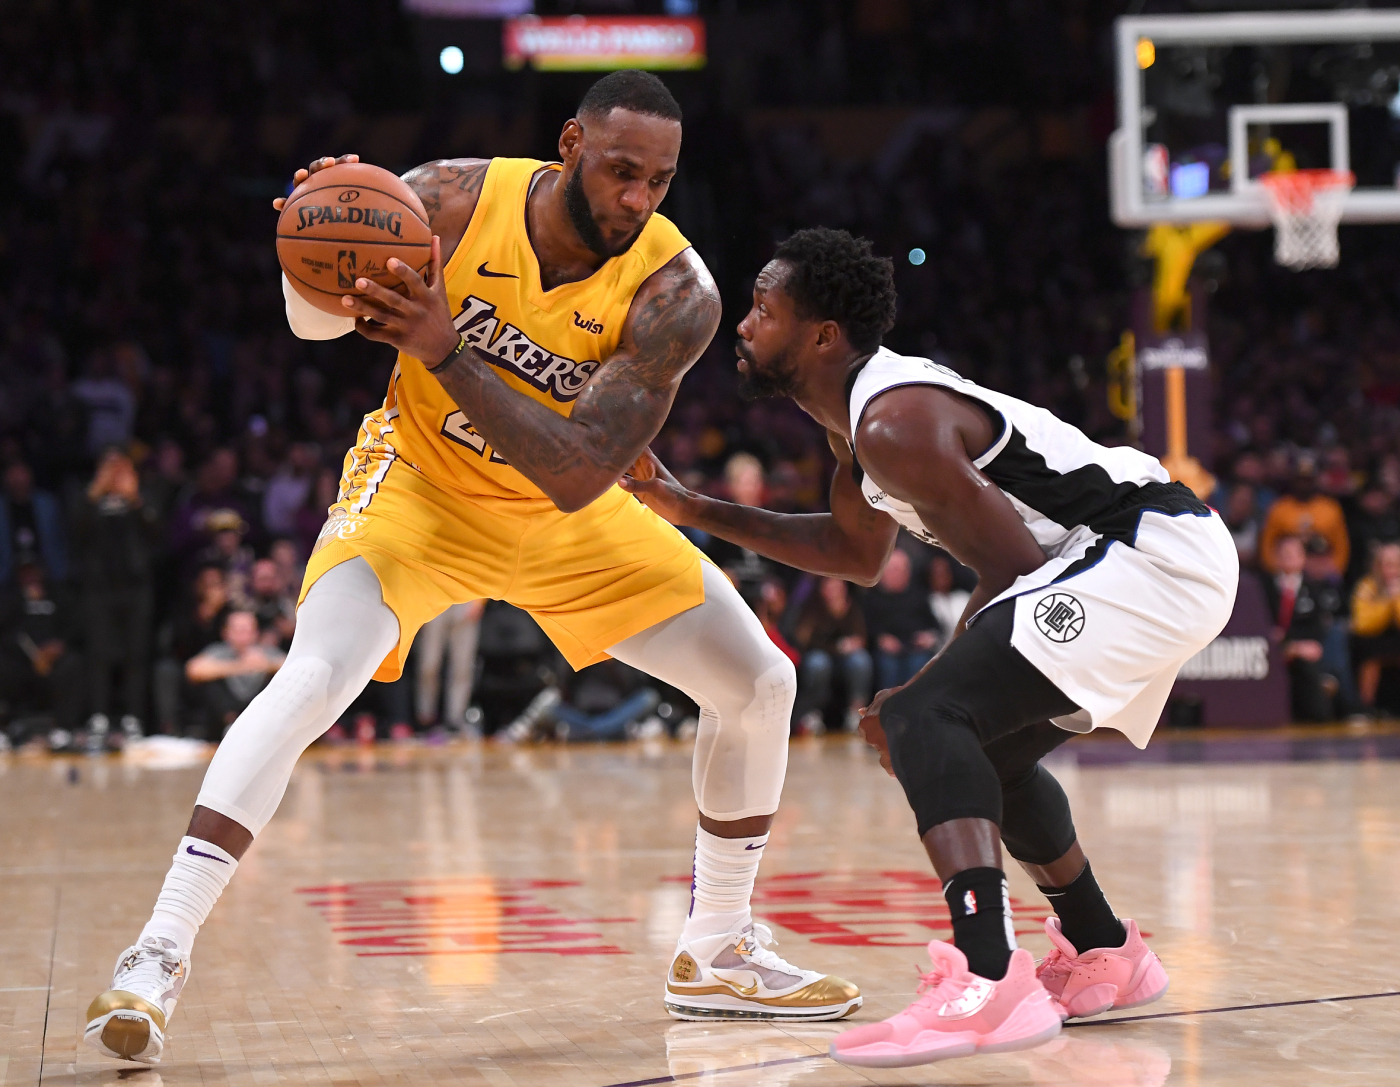 The LA Clippers shocked everyone when they blew a 3-1 lead in the playoffs. This included LeBron James, who has strong comments about them.